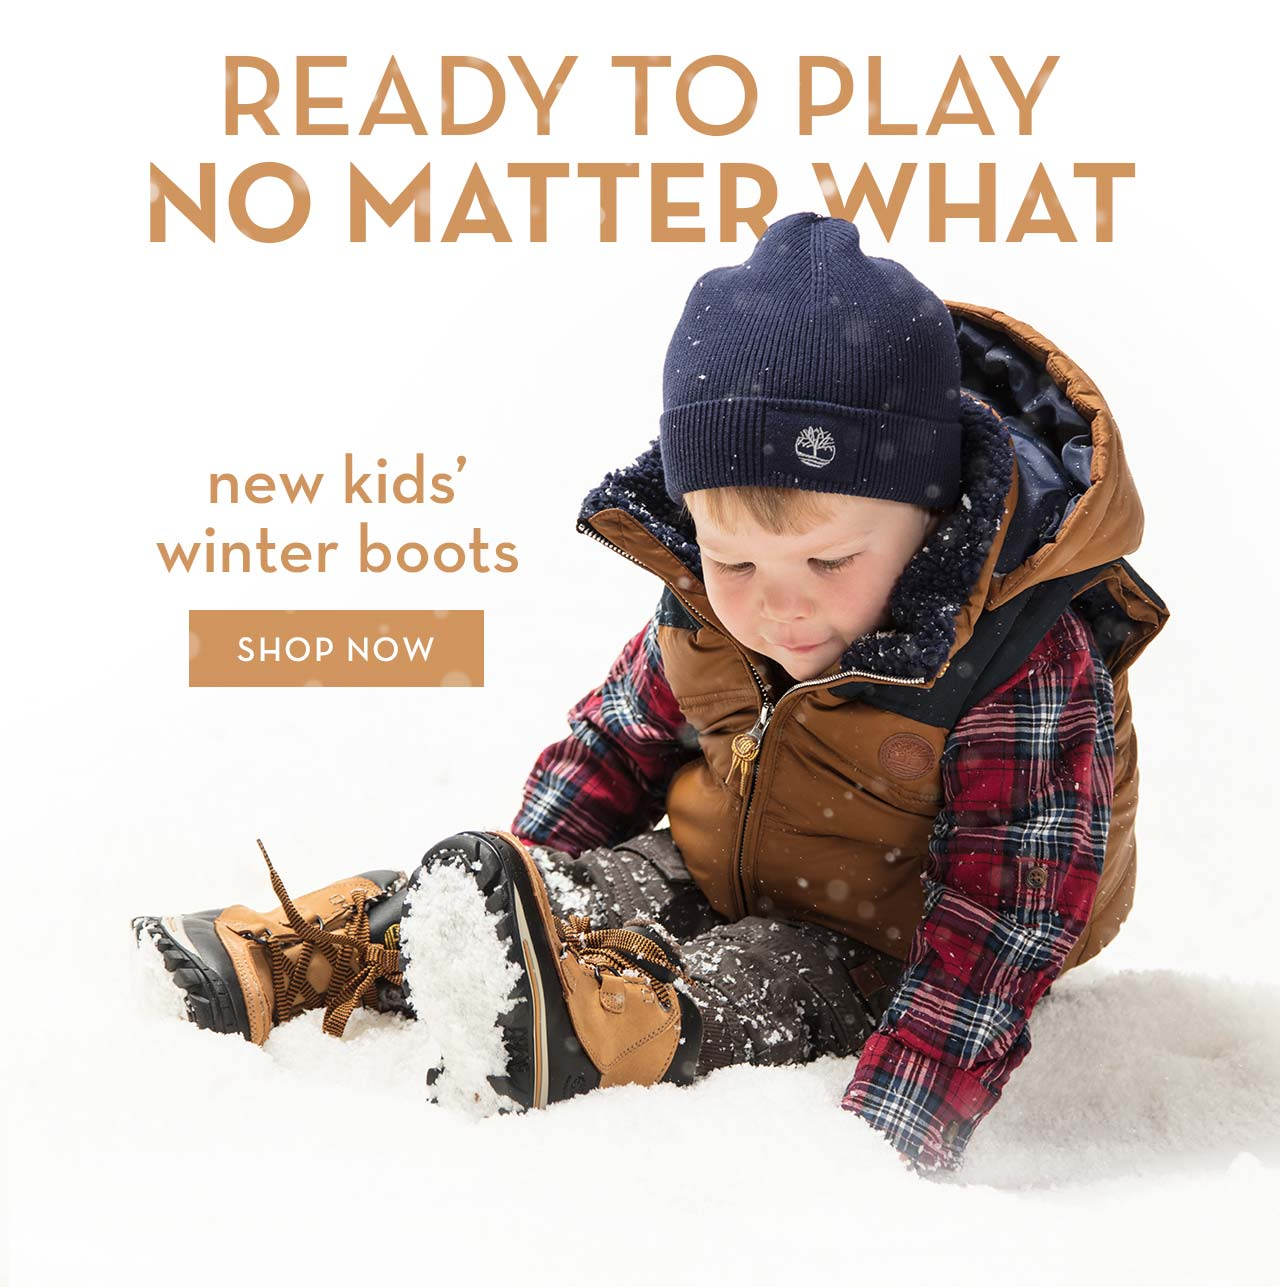 Ready To Play No Matter What New Kids' Winter Boots Shop Now